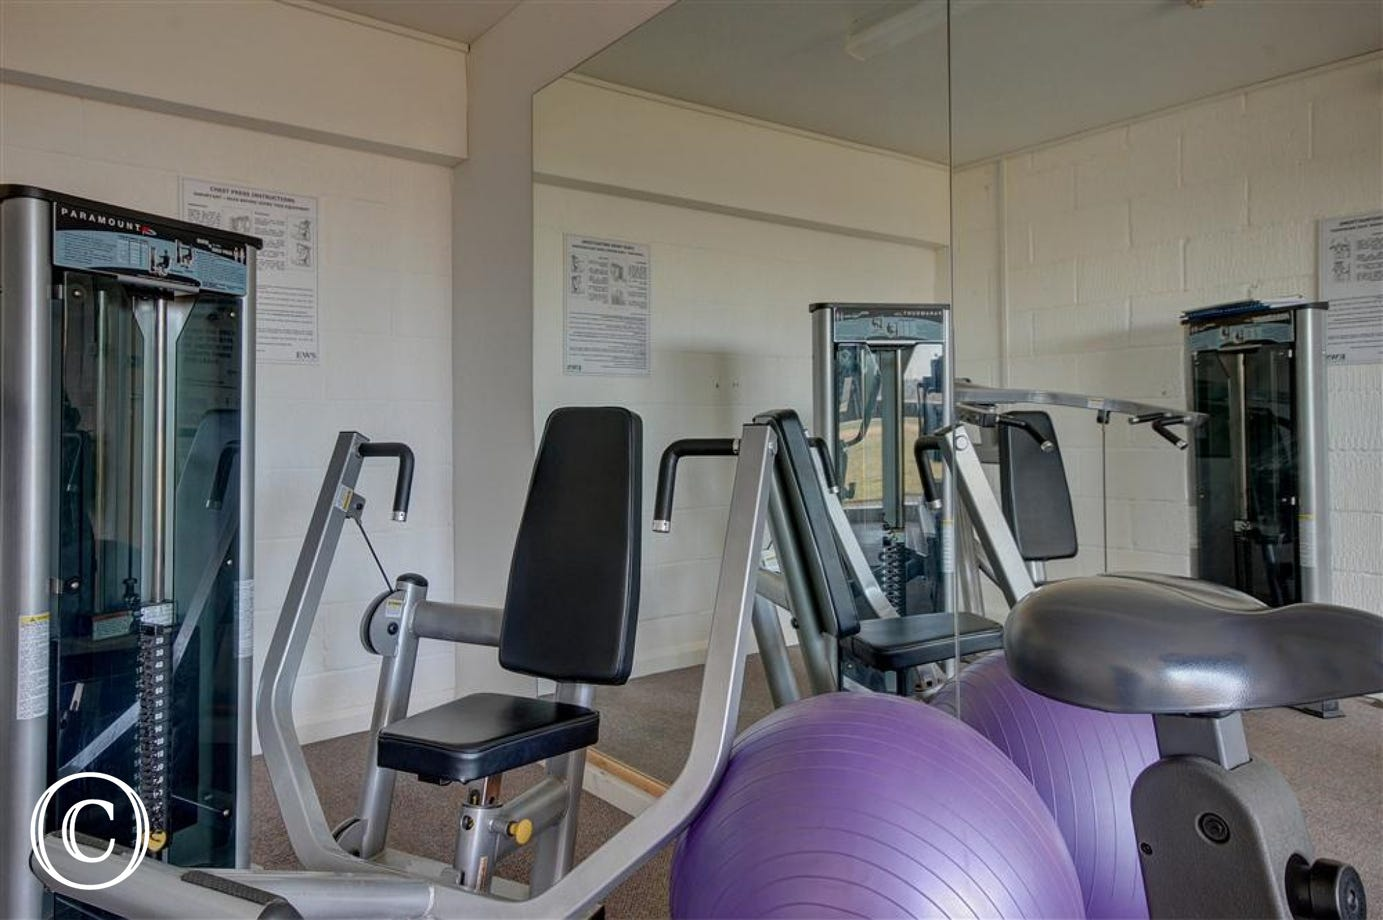 Enjoy working those muscles in this gym which is onsite at the Bltyhview complex.